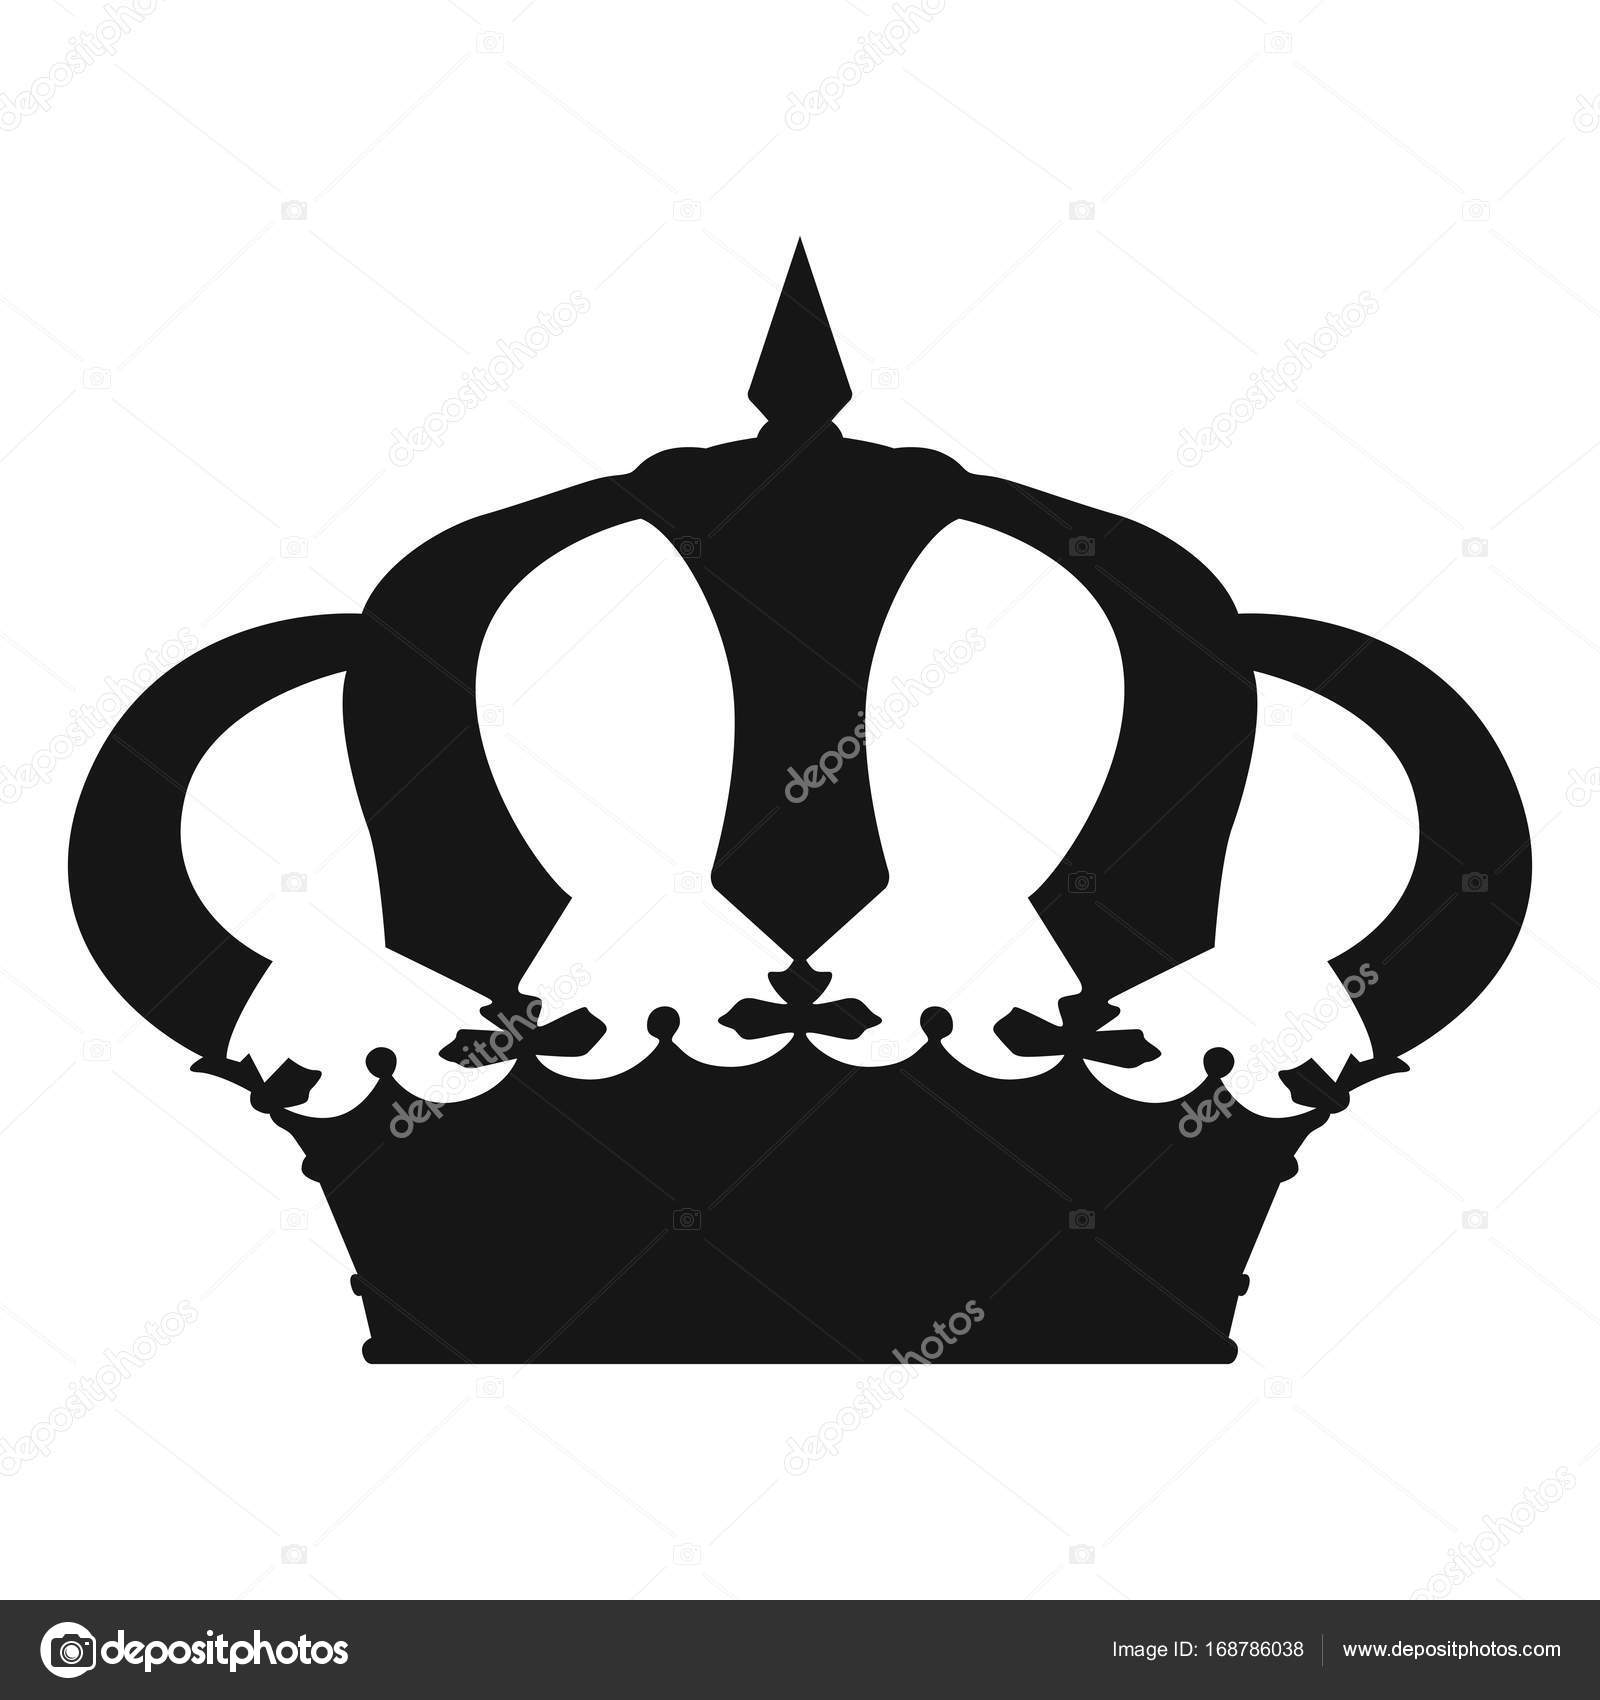 Isolated Crown Silhouette Stock Vector C Laudiseno 168786038 Are you searching for crown silhouette png images or vector? https depositphotos com 168786038 stock illustration isolated crown silhouette html